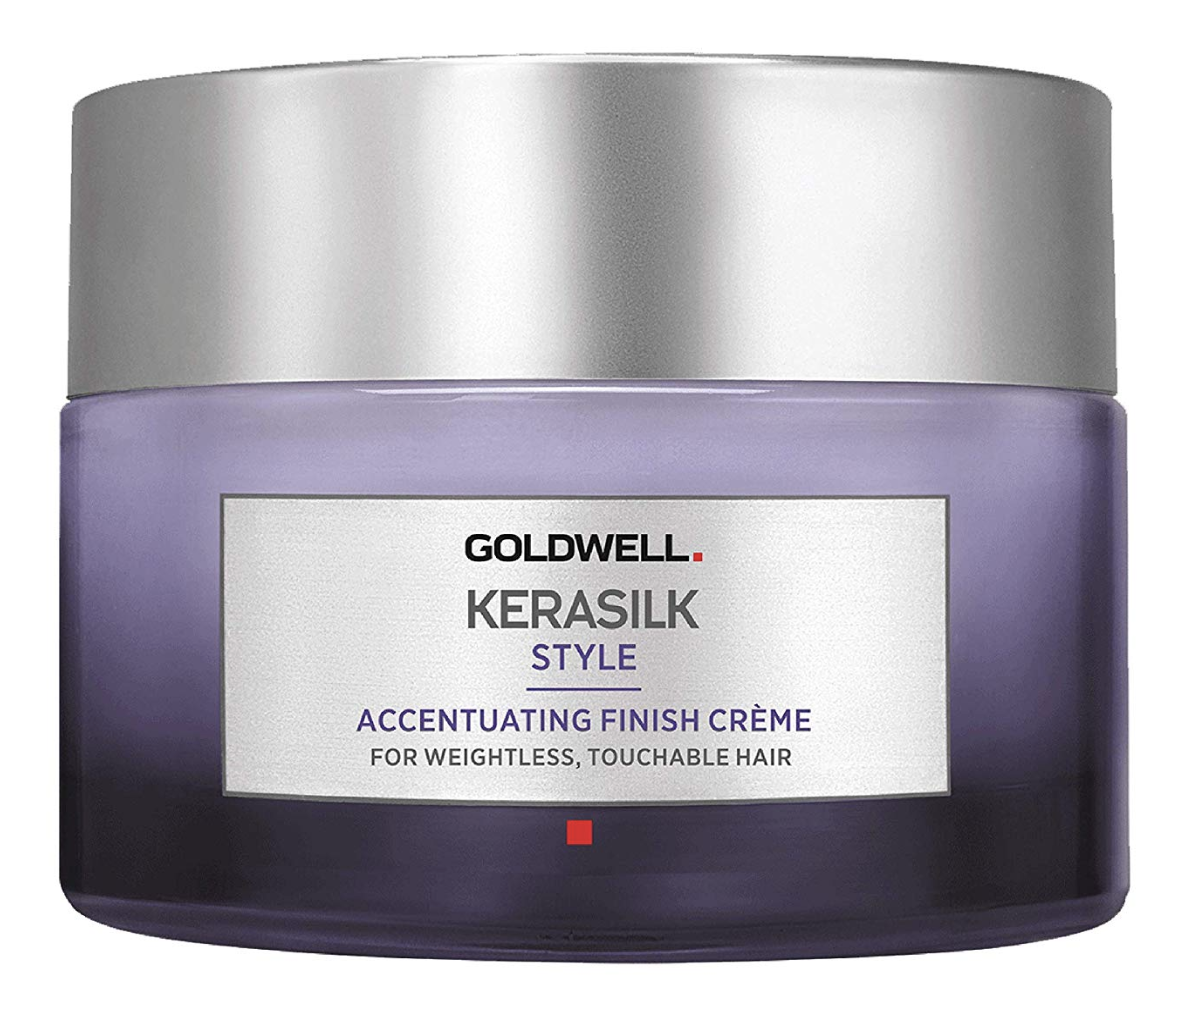 Goldwell Kerasilk Style Accentuating Finish Creme